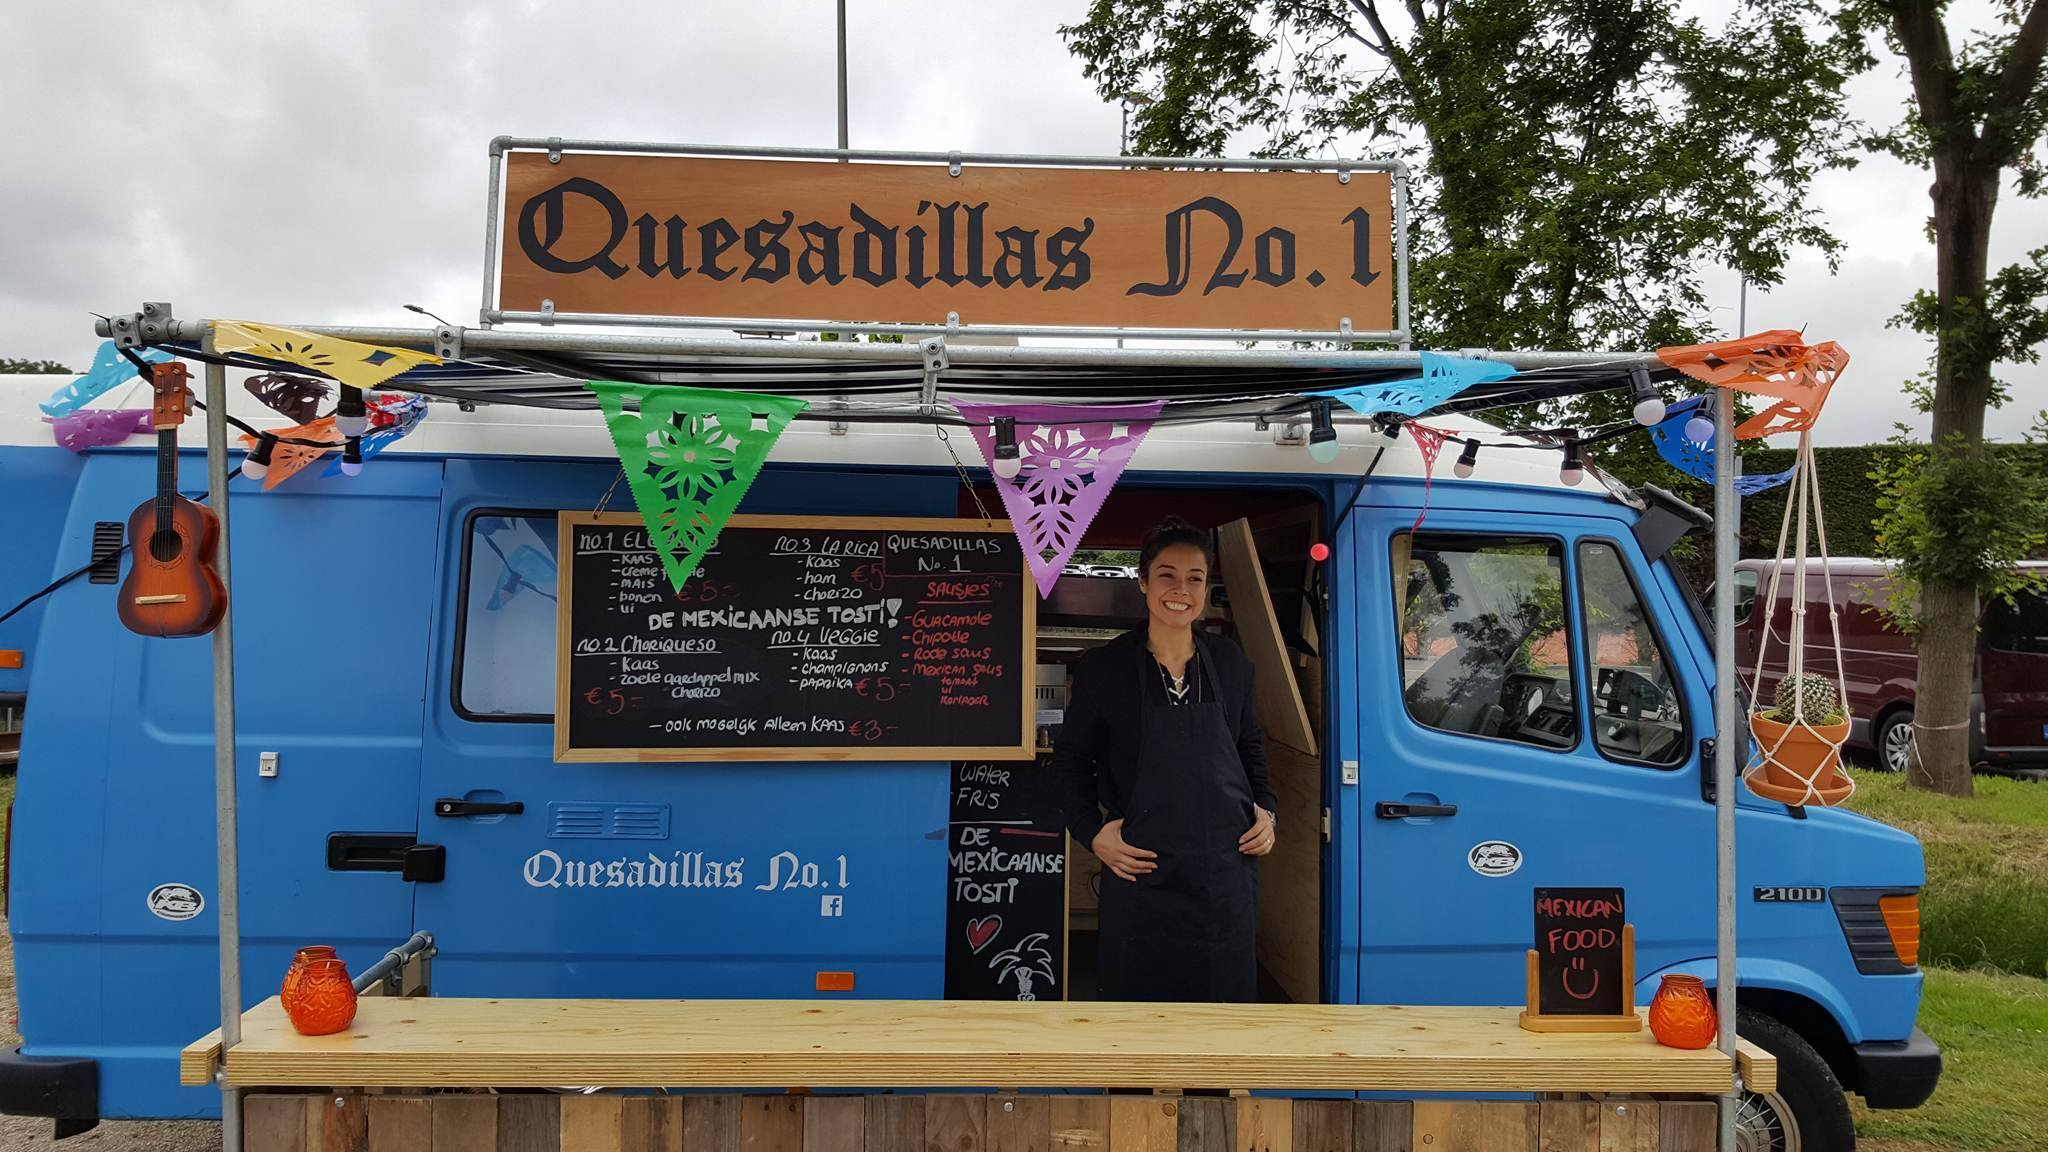 Quesadillas No.1 Mexicaanse food truck